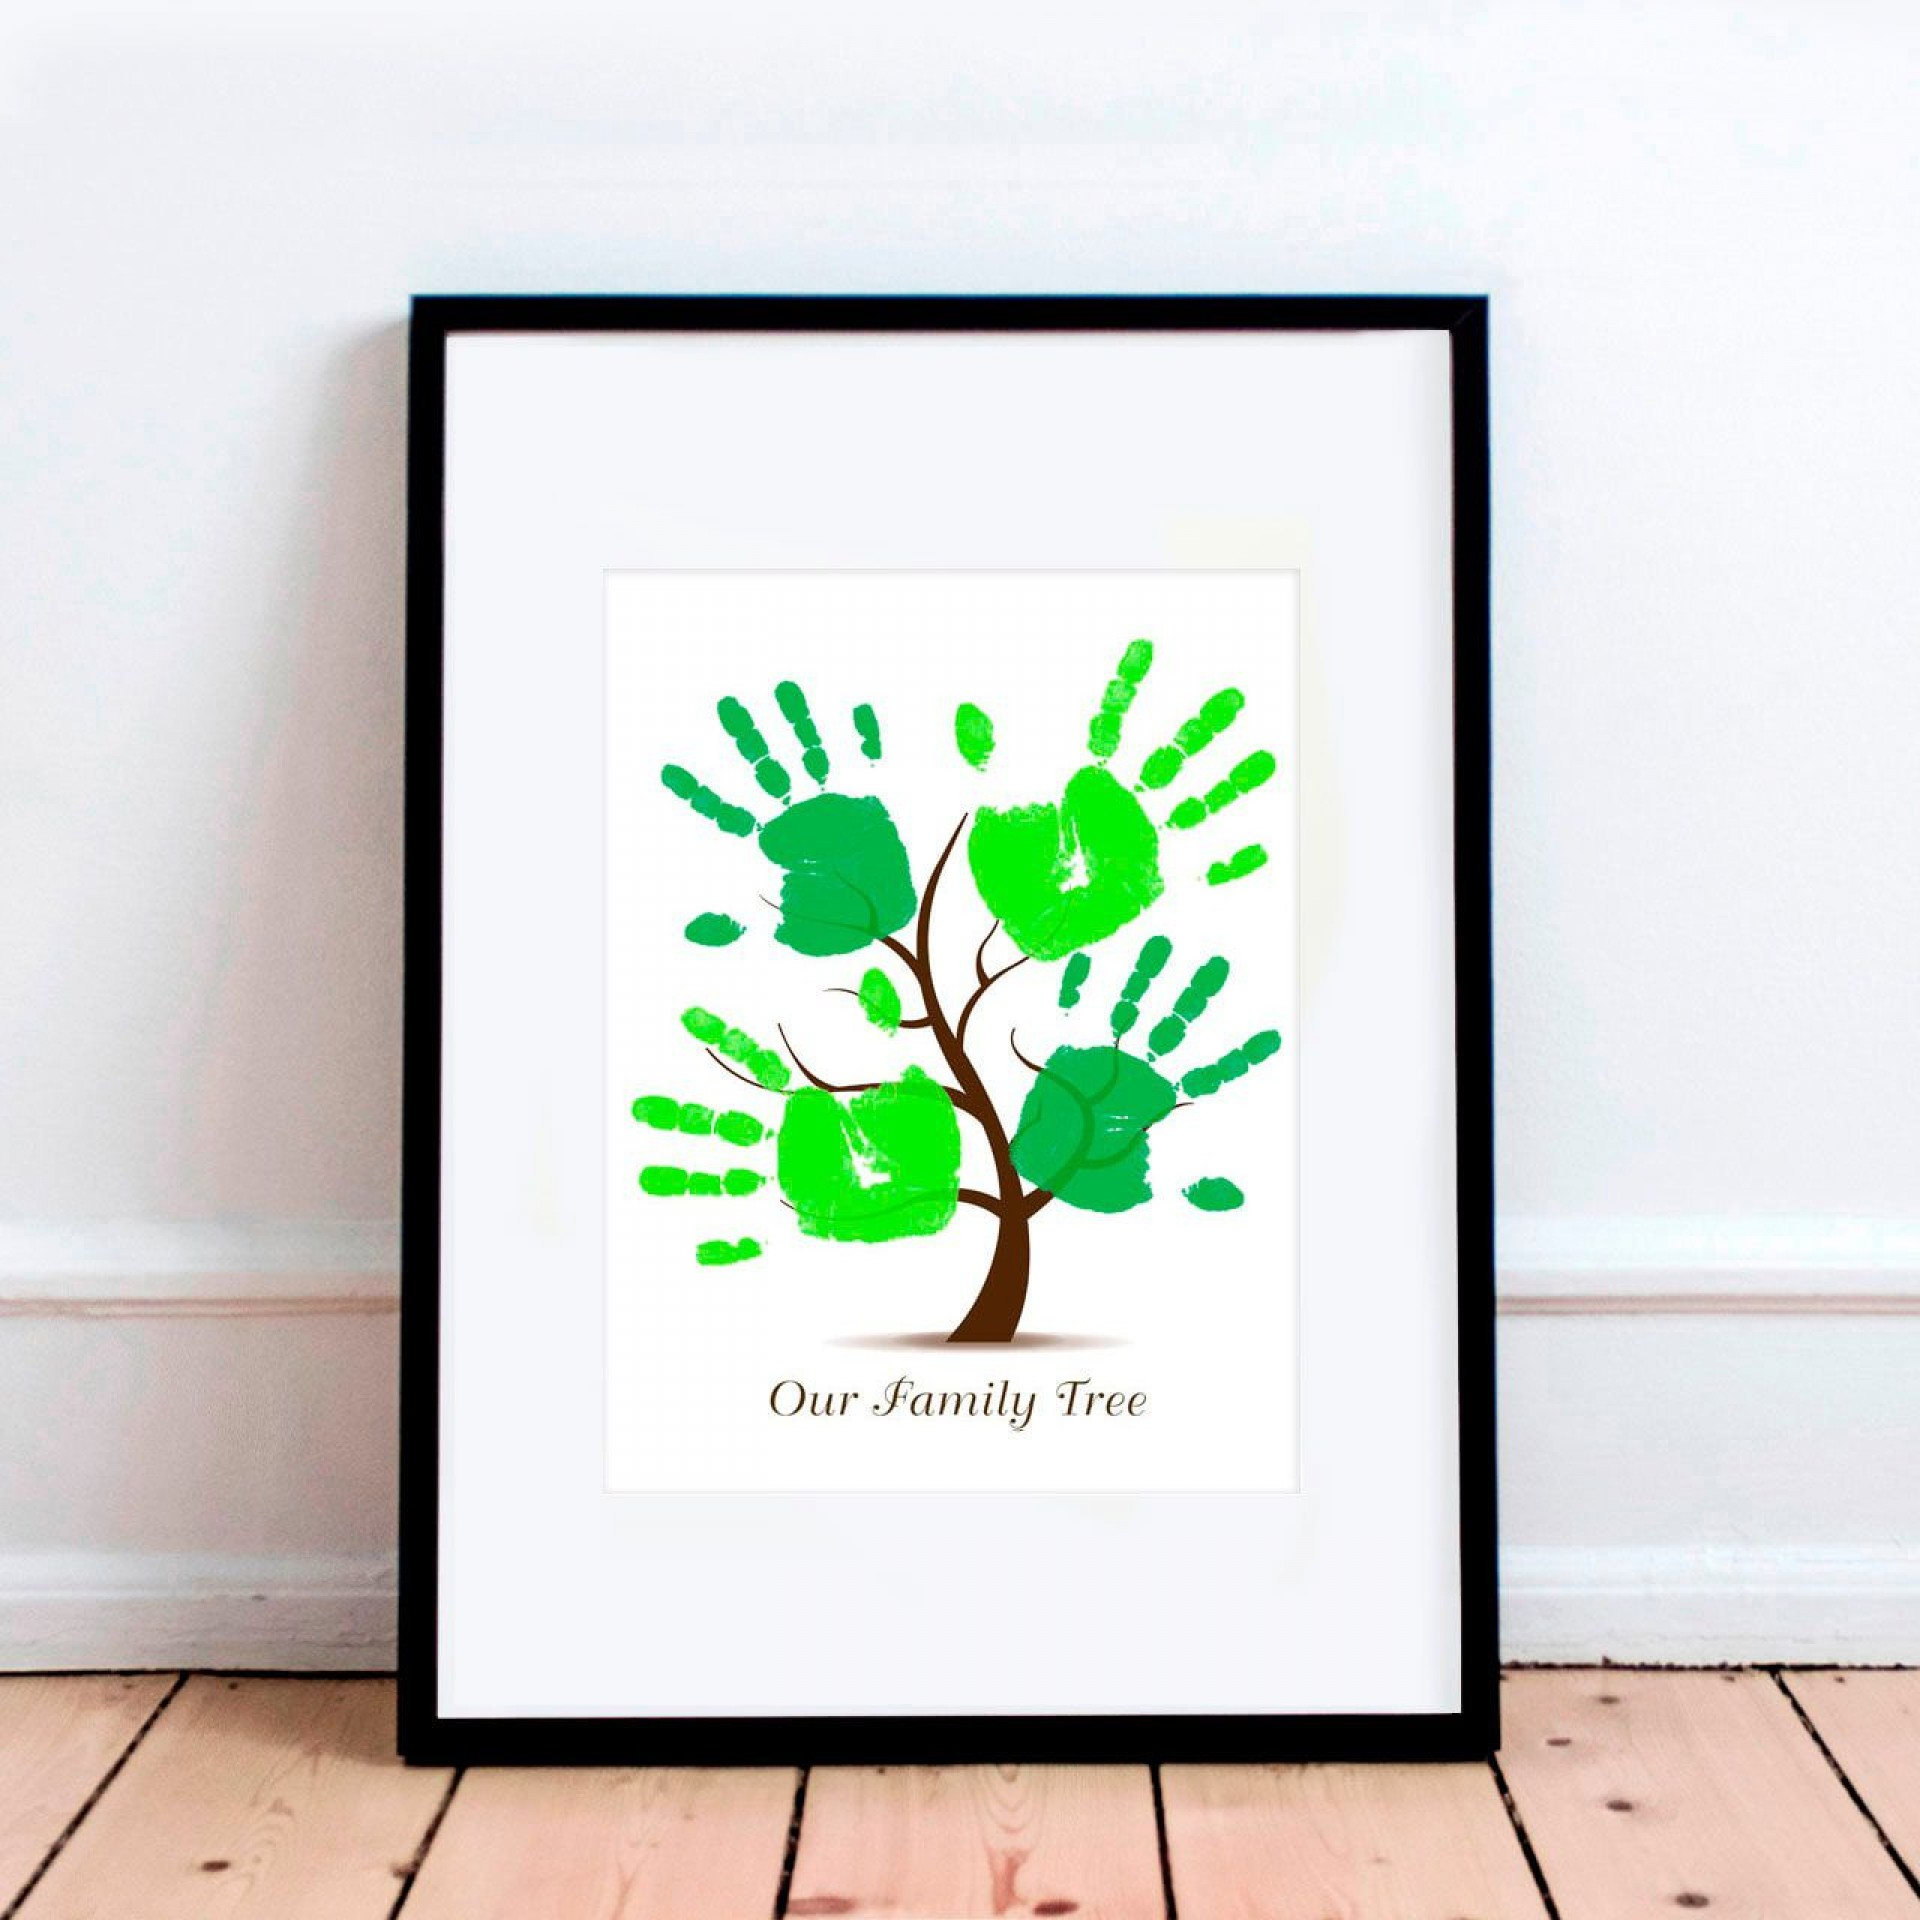 012 Outstanding Family Tree For Baby Book Template Inspiration  Printable1920